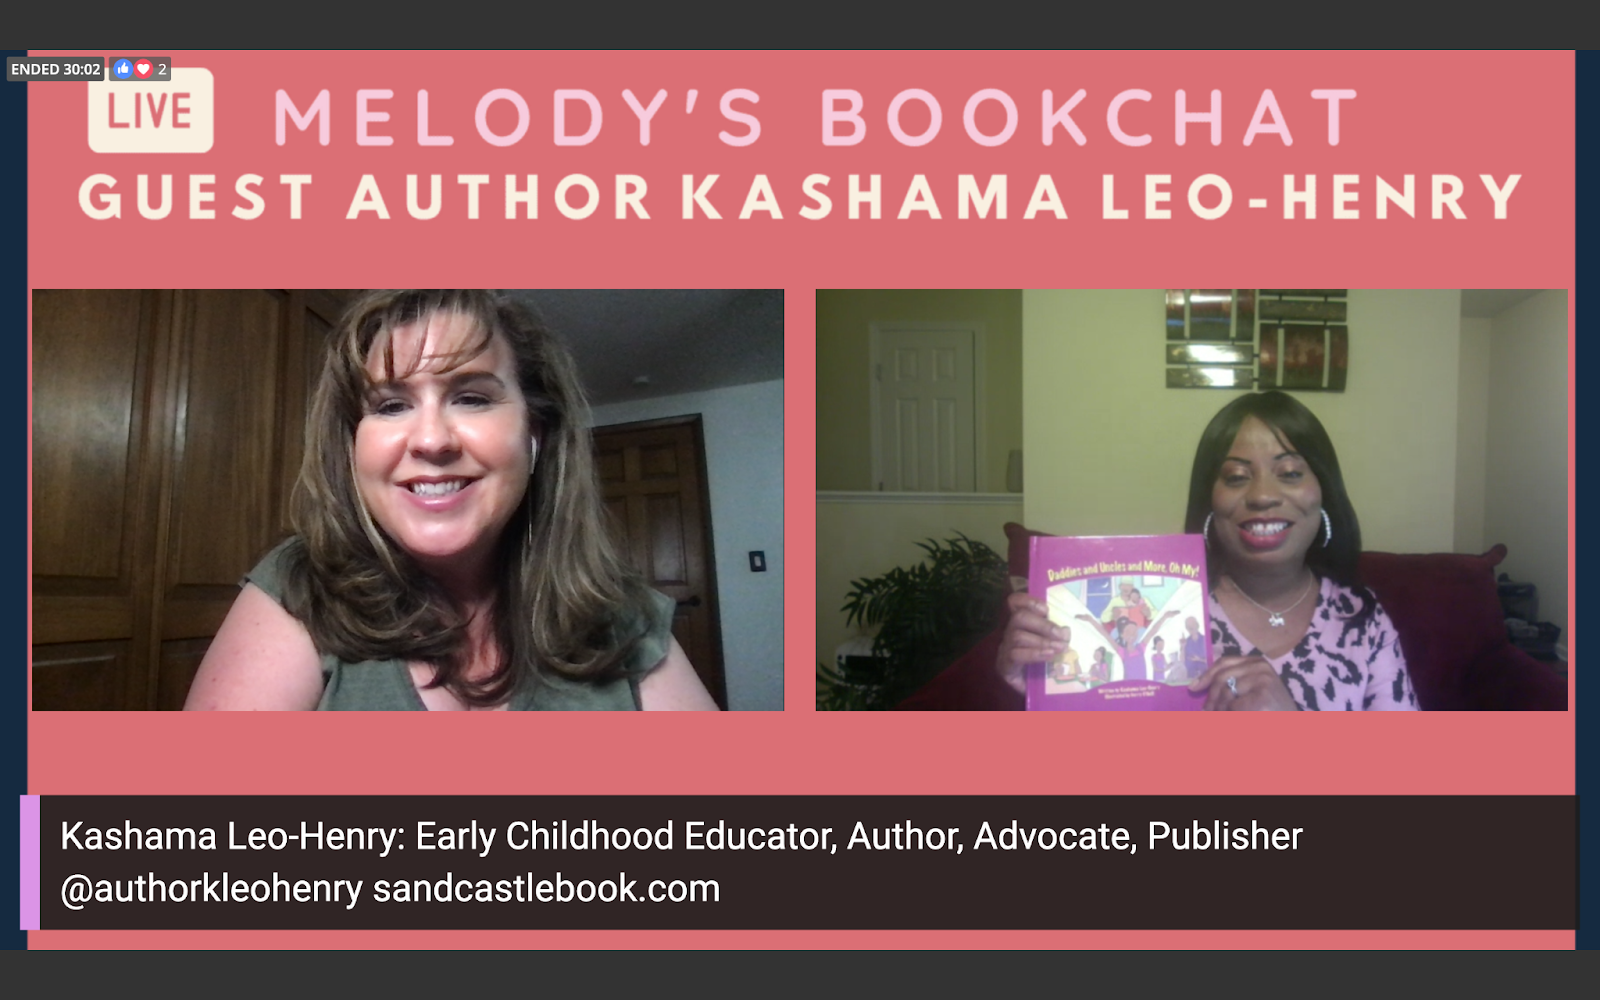 Book chat with children's book author Kashama Leo-Henry on her new book celebrating Black fathers and father figures